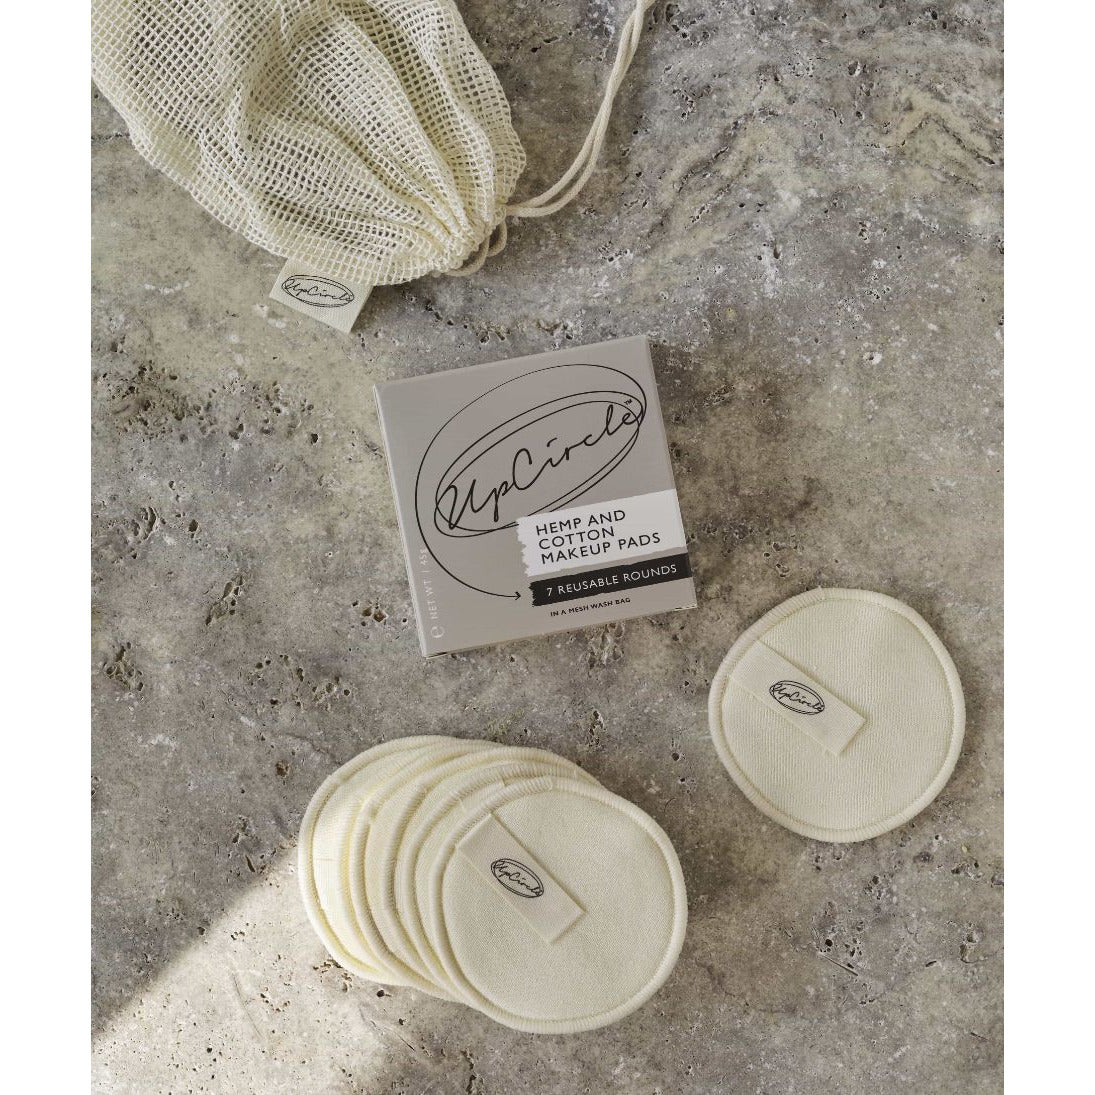 UpCircle Hemp and Cotton Make Up Pads - Scandi Minimal